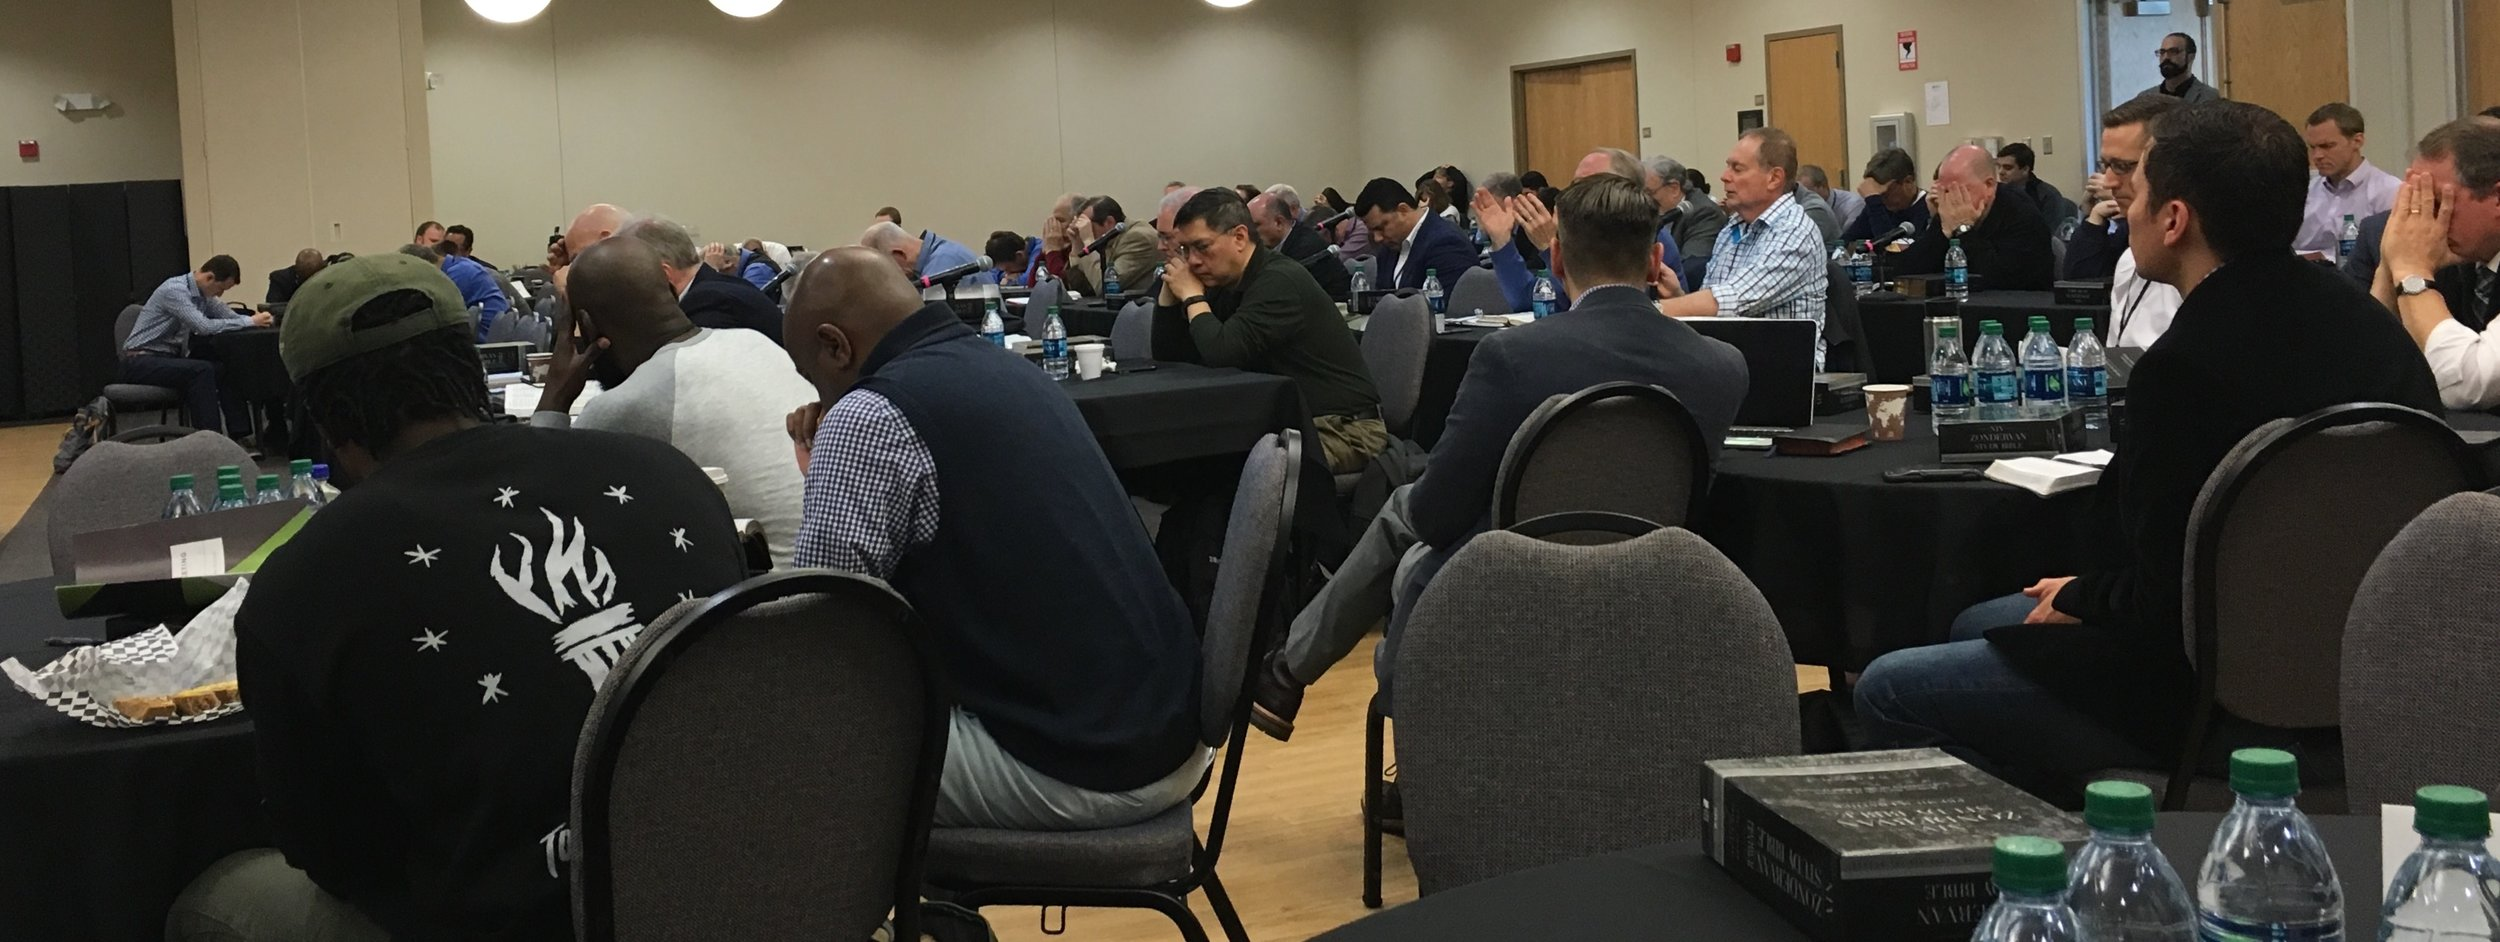 Praying together with the gospel coalition council